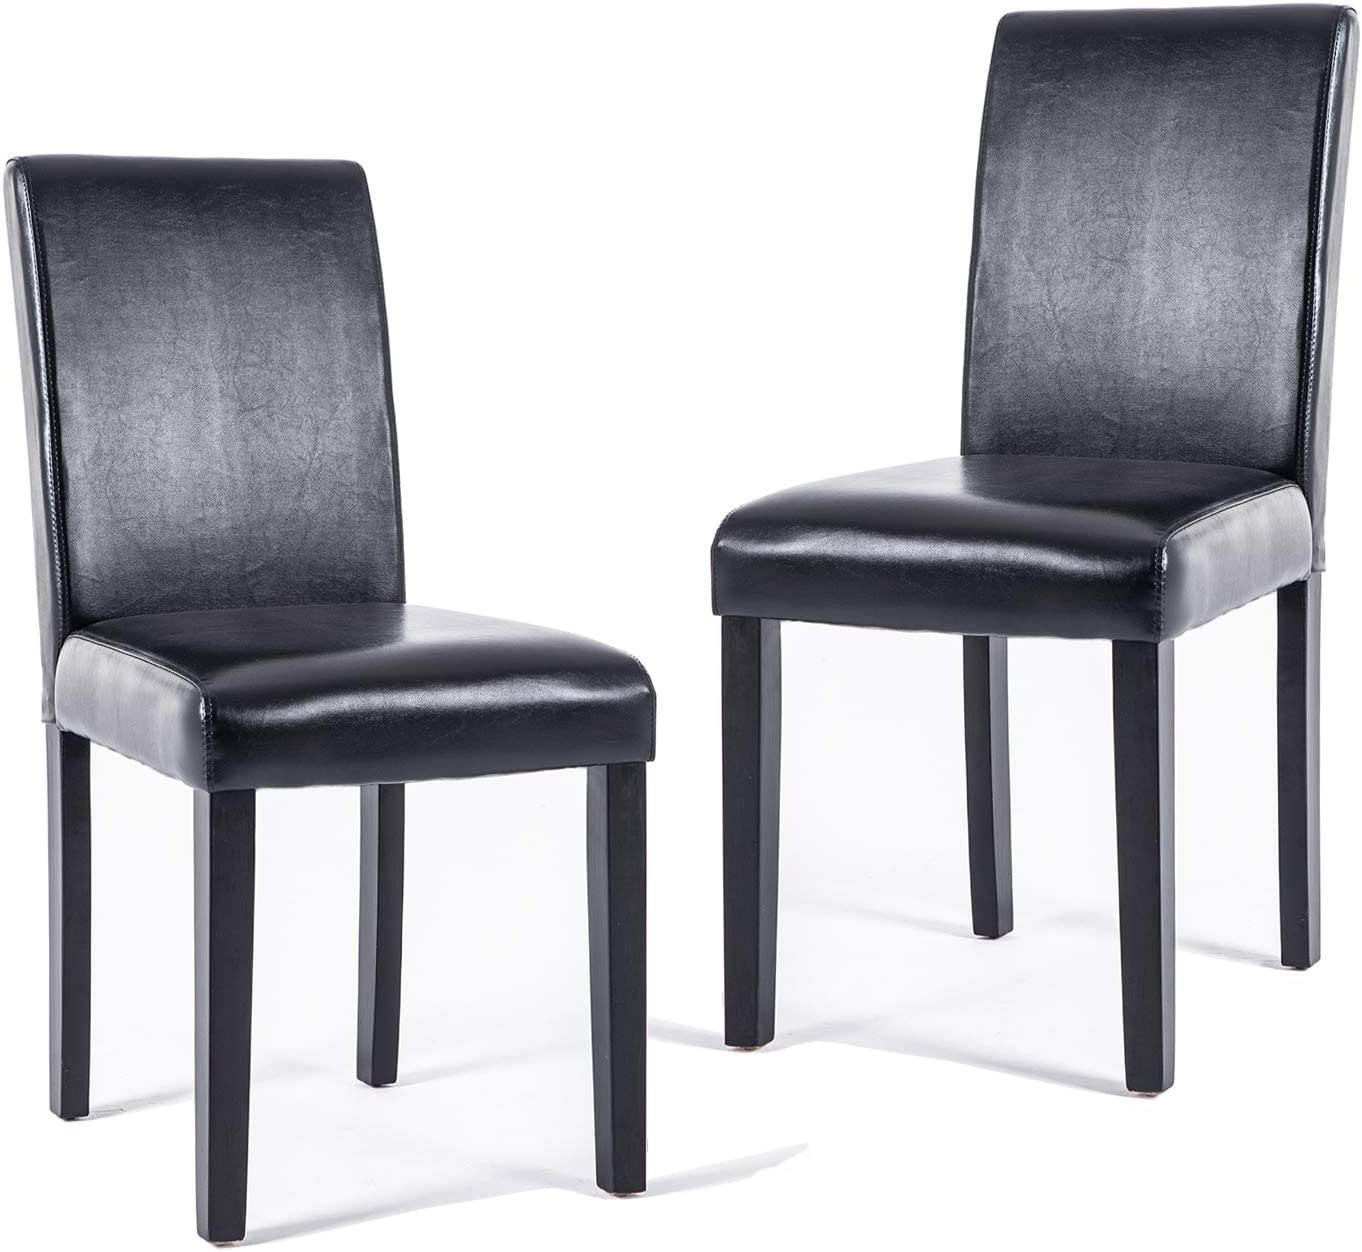 DAGONHIL Dining Chairs Leather Kitchen Parson Chair Urban Style Dining Side  Chair with Solid Wood Legs,Set of 10(Black)